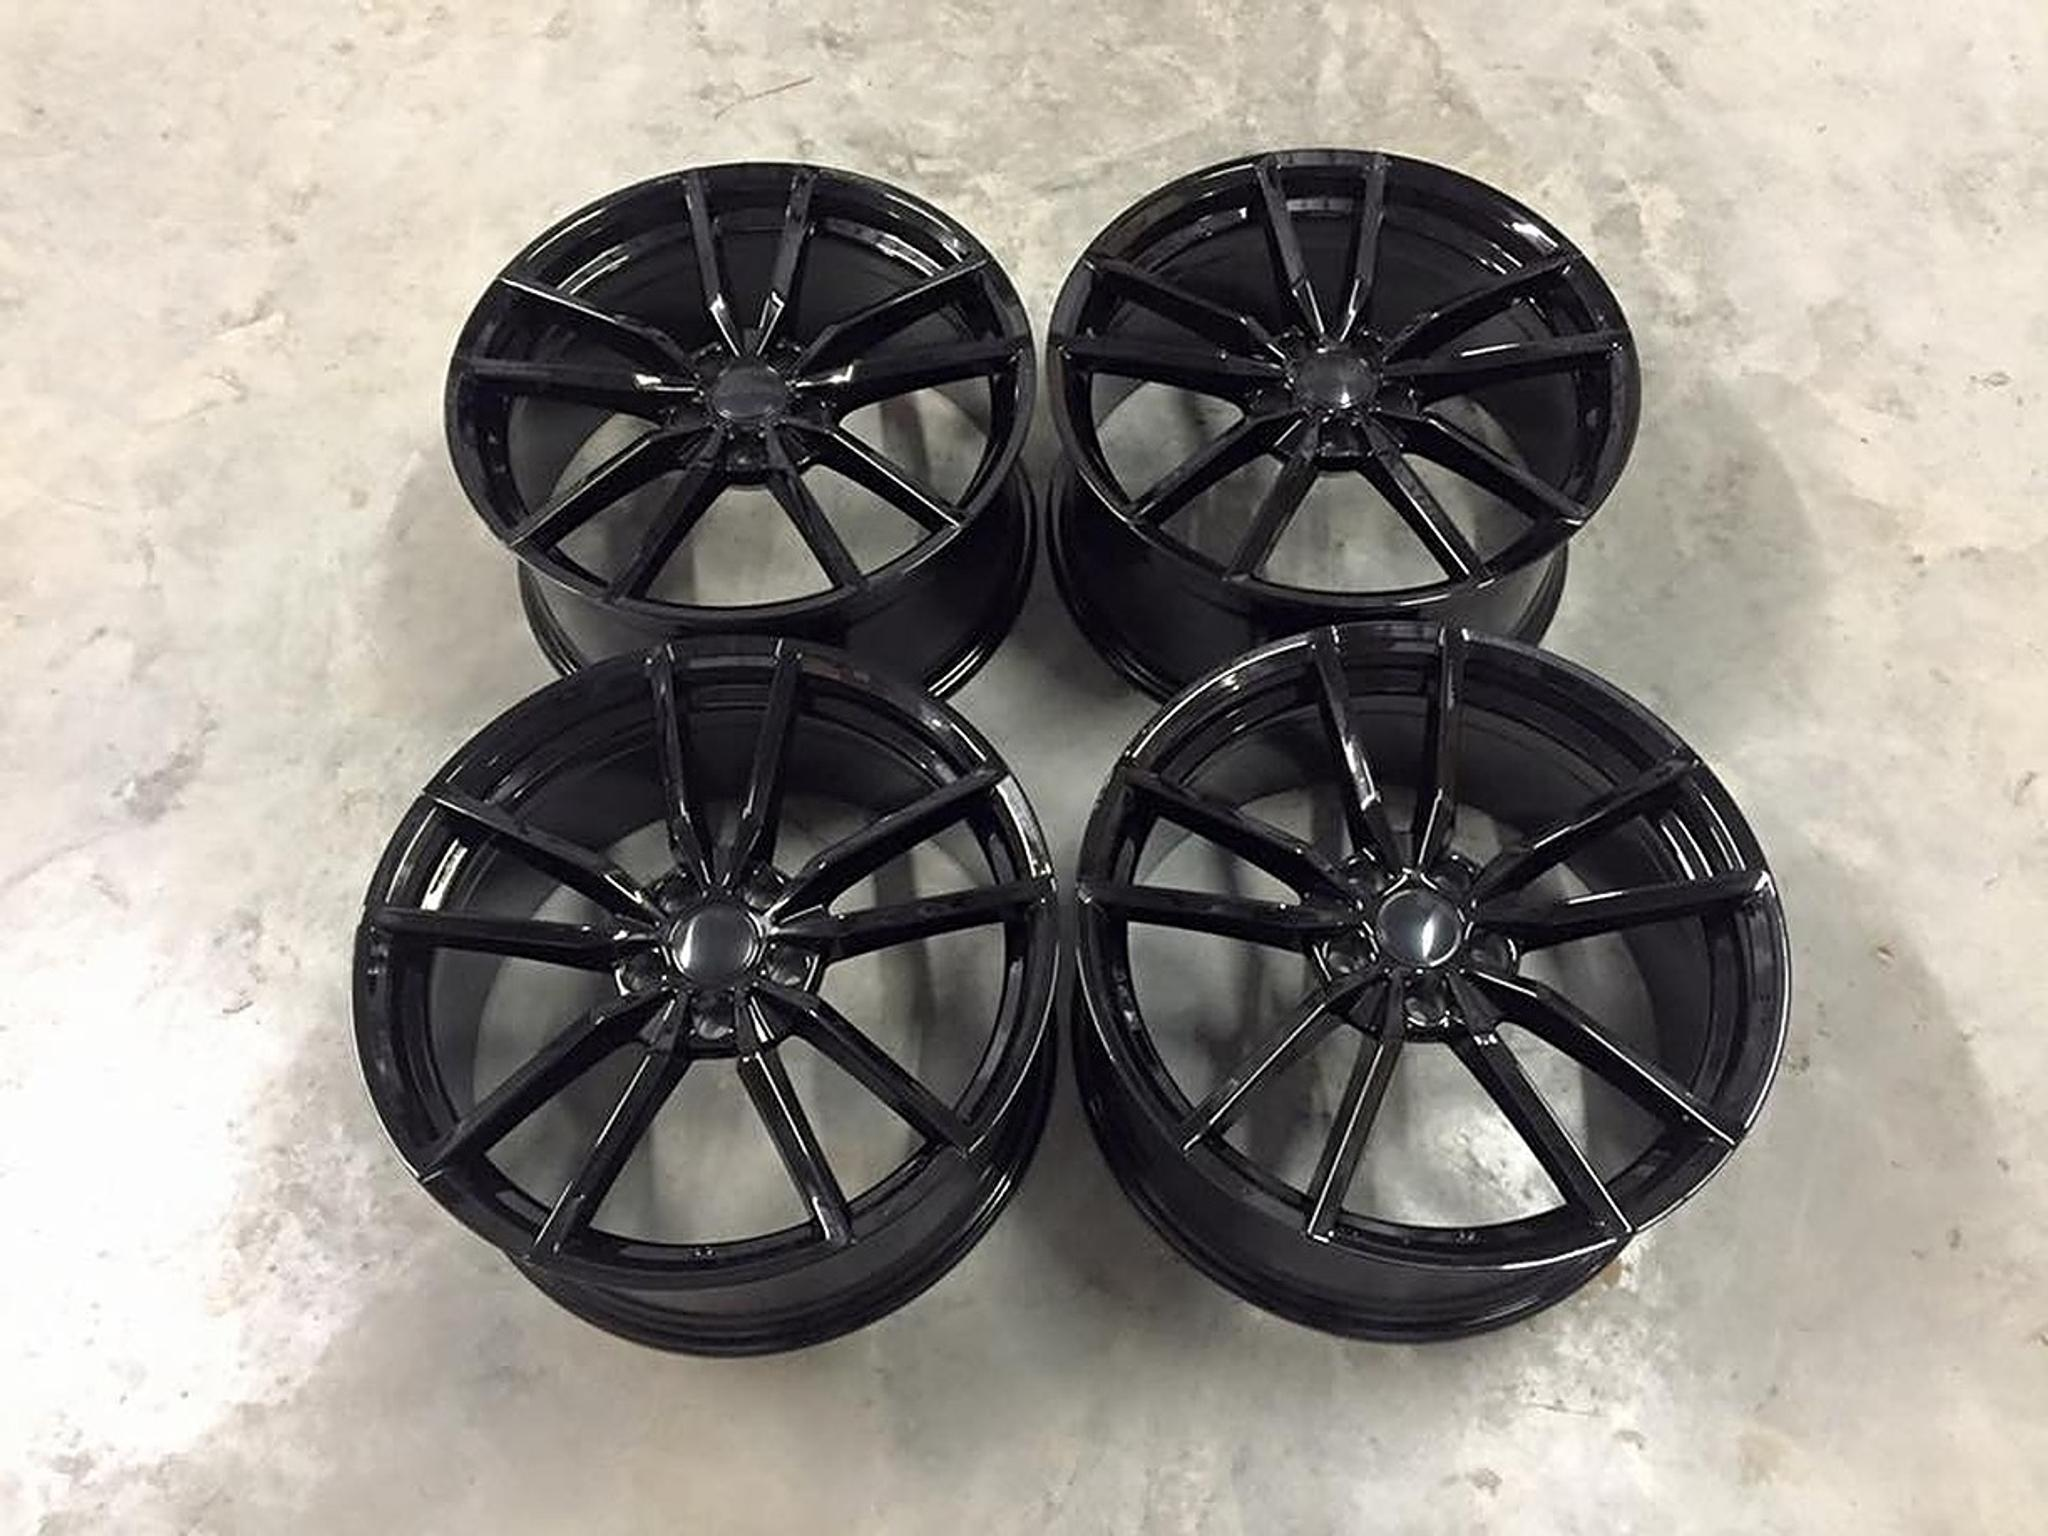 """Volvo C30 For Sale >> 18"""" 19"""" Inch VW pretoria style Alloy wheels in BT71 Dungannon for £405.00 for sale 